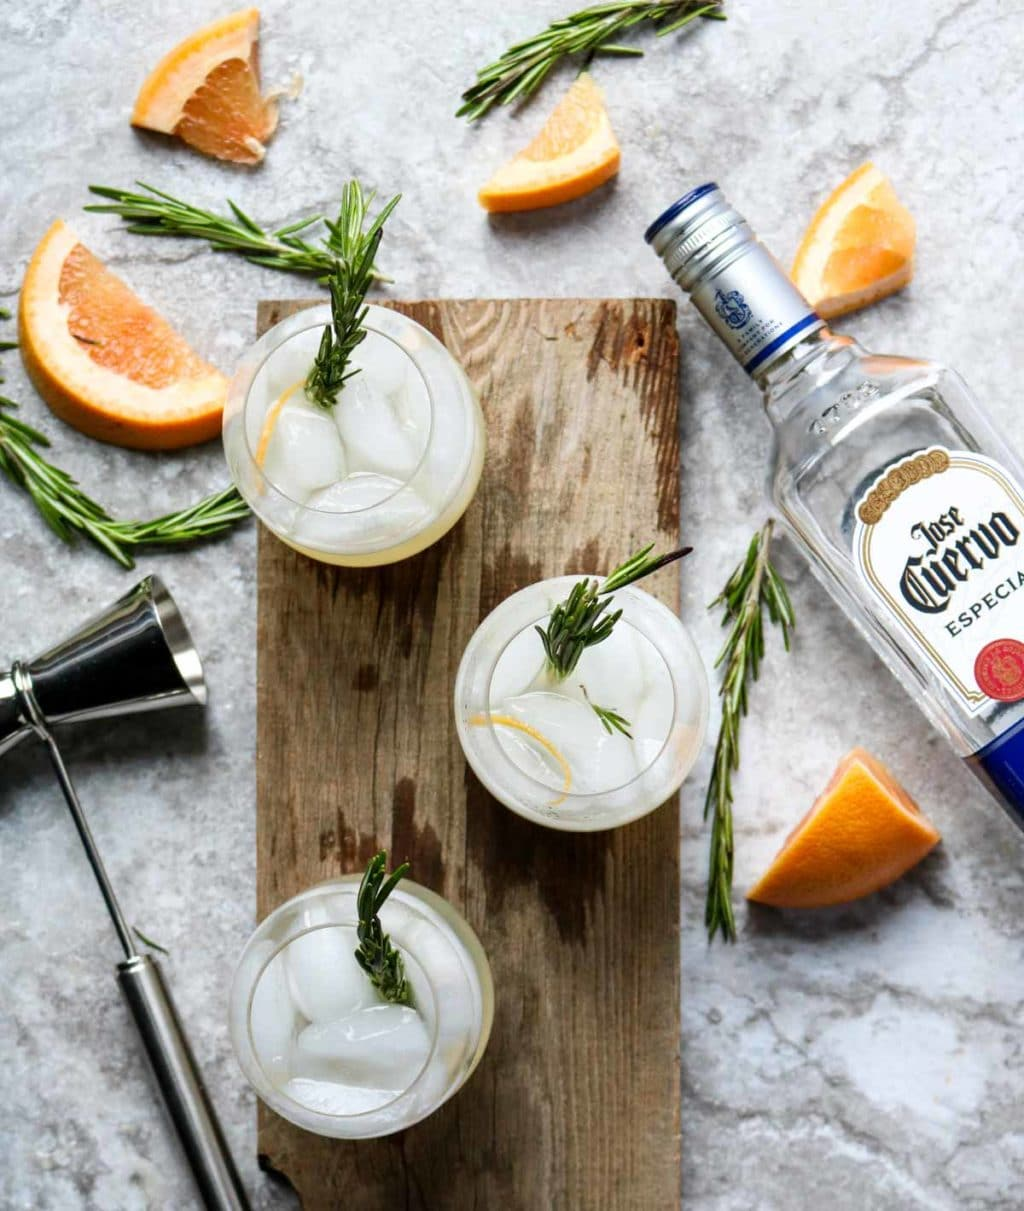 three glass of Rosemary Paloma on a board with a bottle of Jose Cuervo to the side